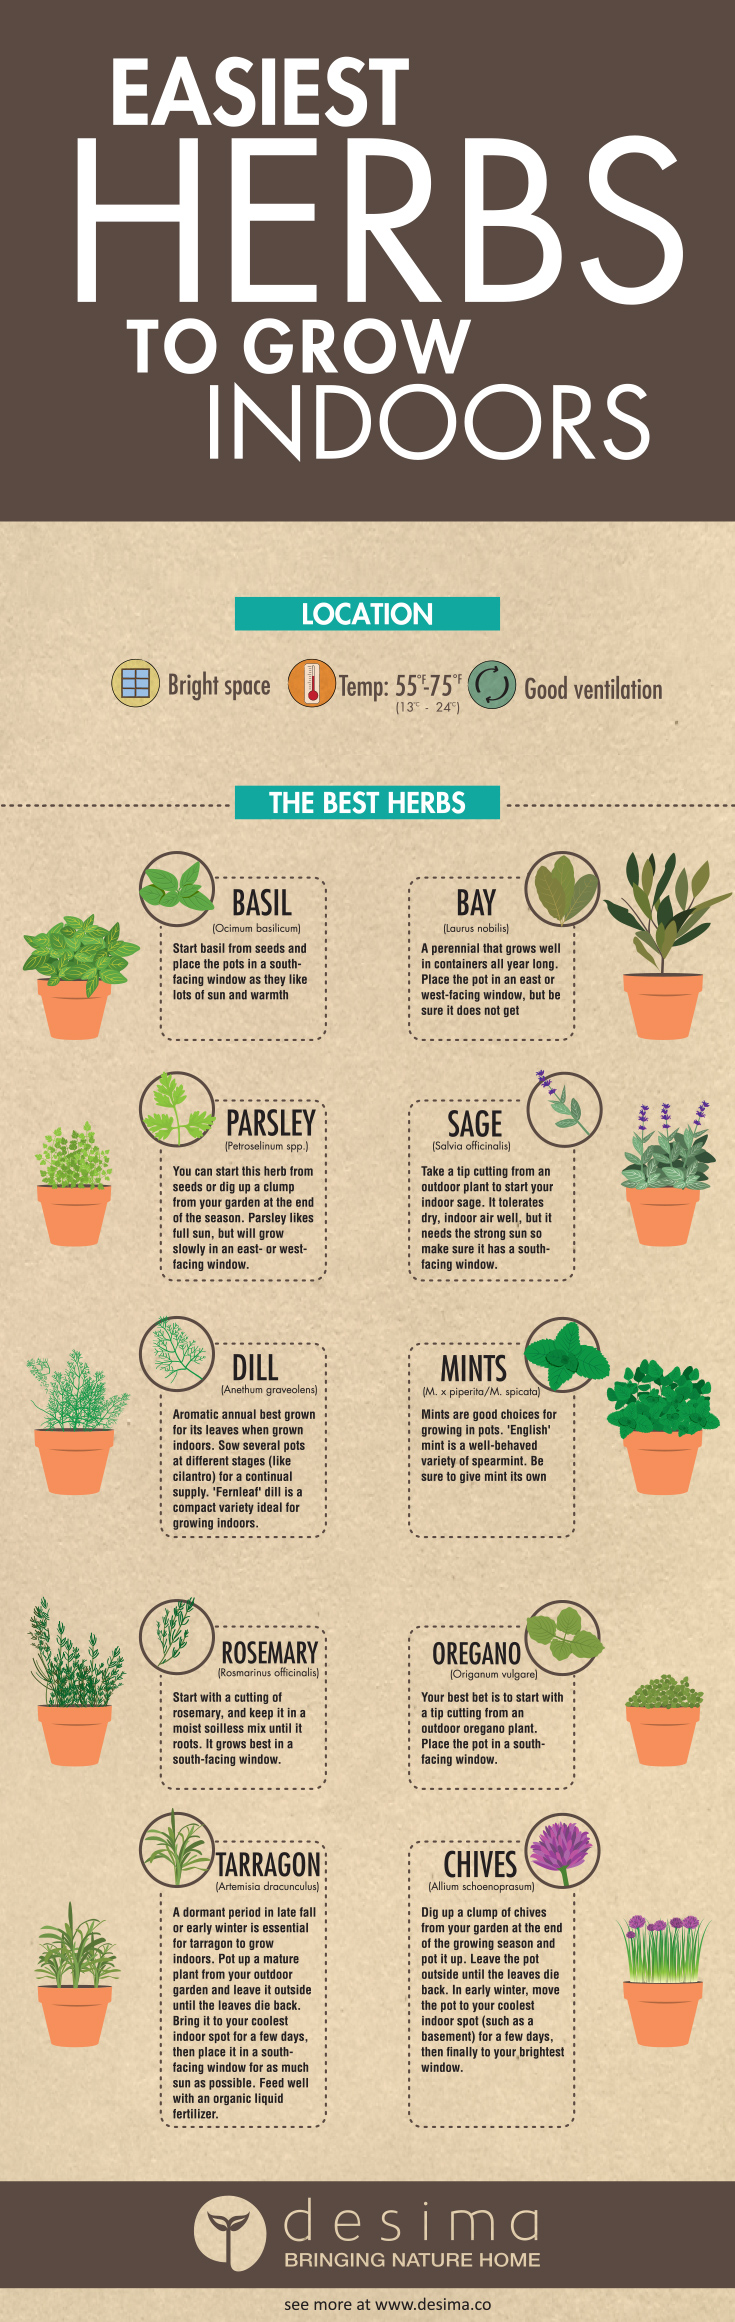 The easiest herbs to grow indoors urban organic gardener - Easiest herbs to grow indoors ...